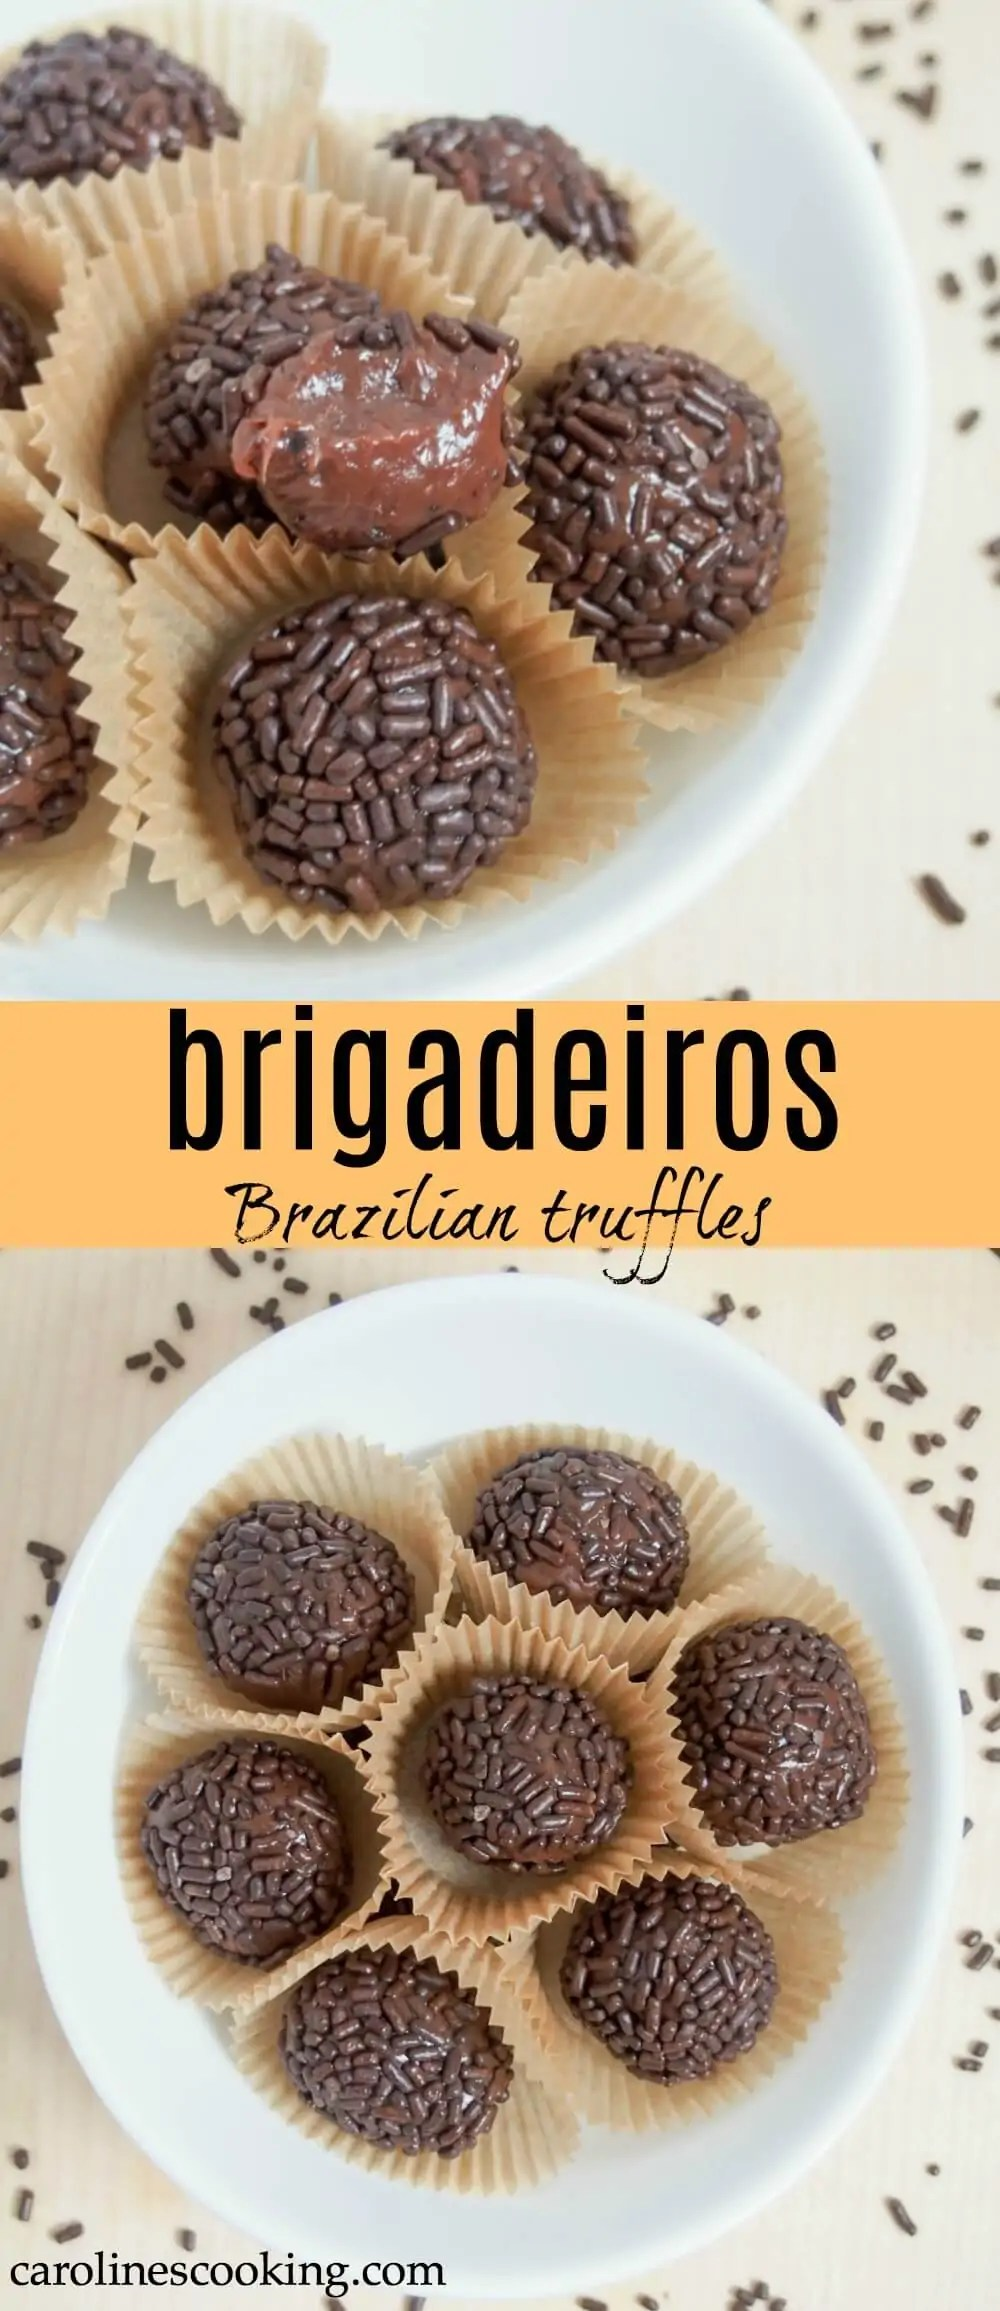 Brigadeiros are a kind of fudge/truffle from Brazil that's often enjoyed for carnival, but really I think most people will make any excuse. They're a really easy sweet treat that the whole family will love. #brazilian #truffle #chocolate